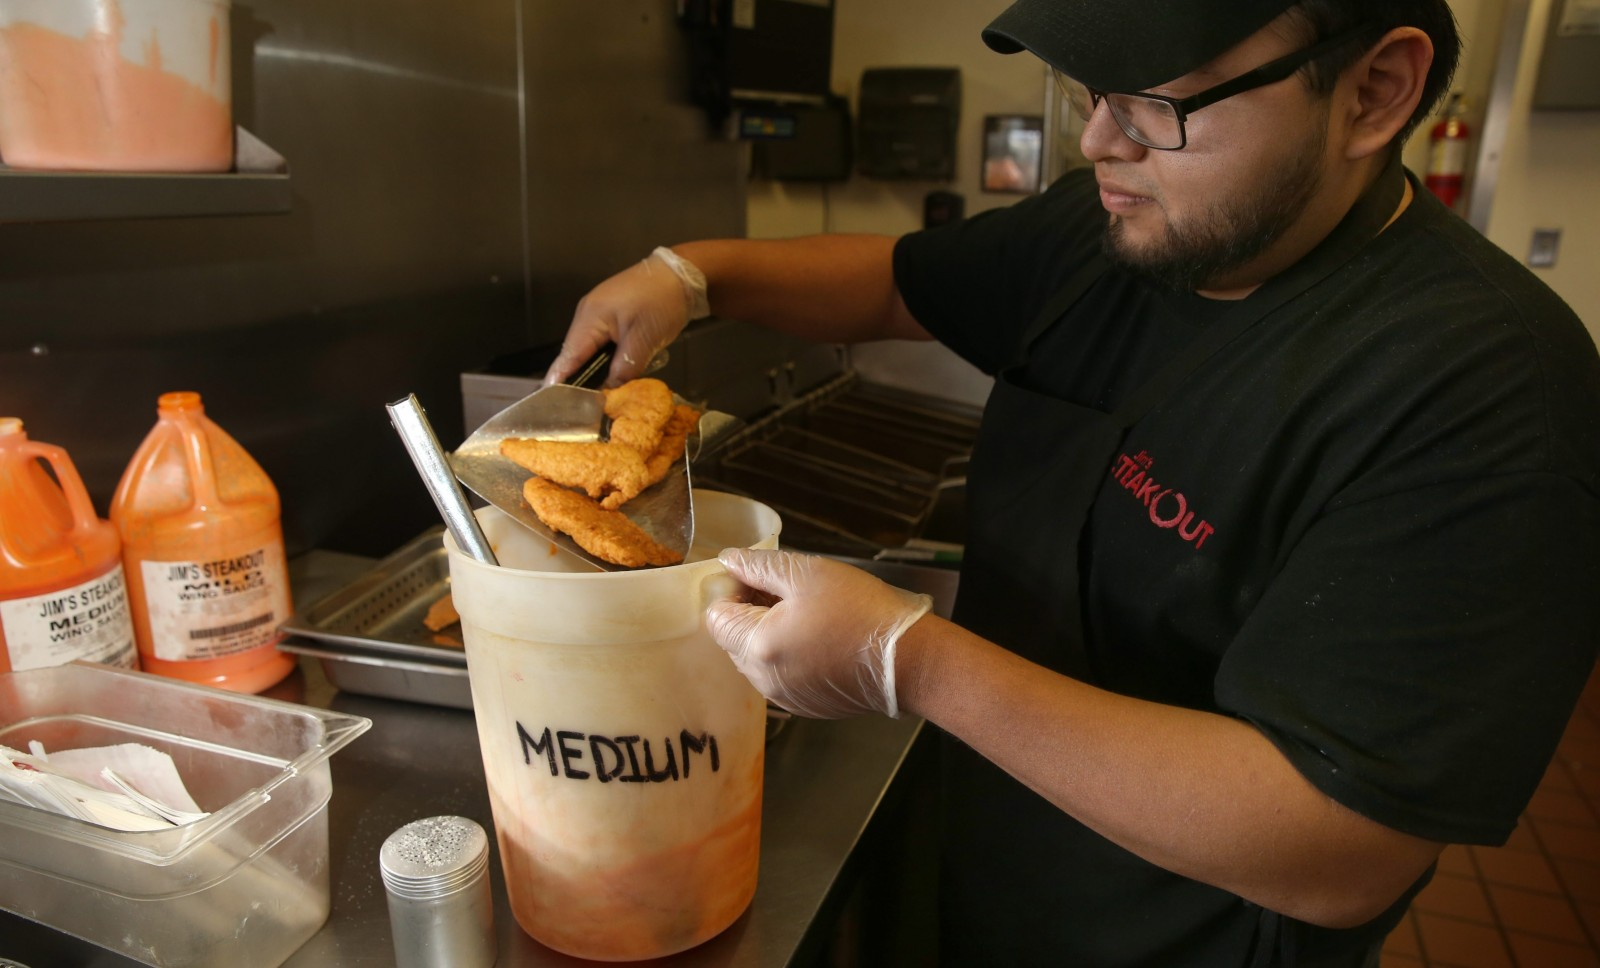 Jim's Steakout cook Alfredo Castaneda dips the deep-fried chicken fingers go into the hot sauce. (Sharon Cantillon/Buffalo News)